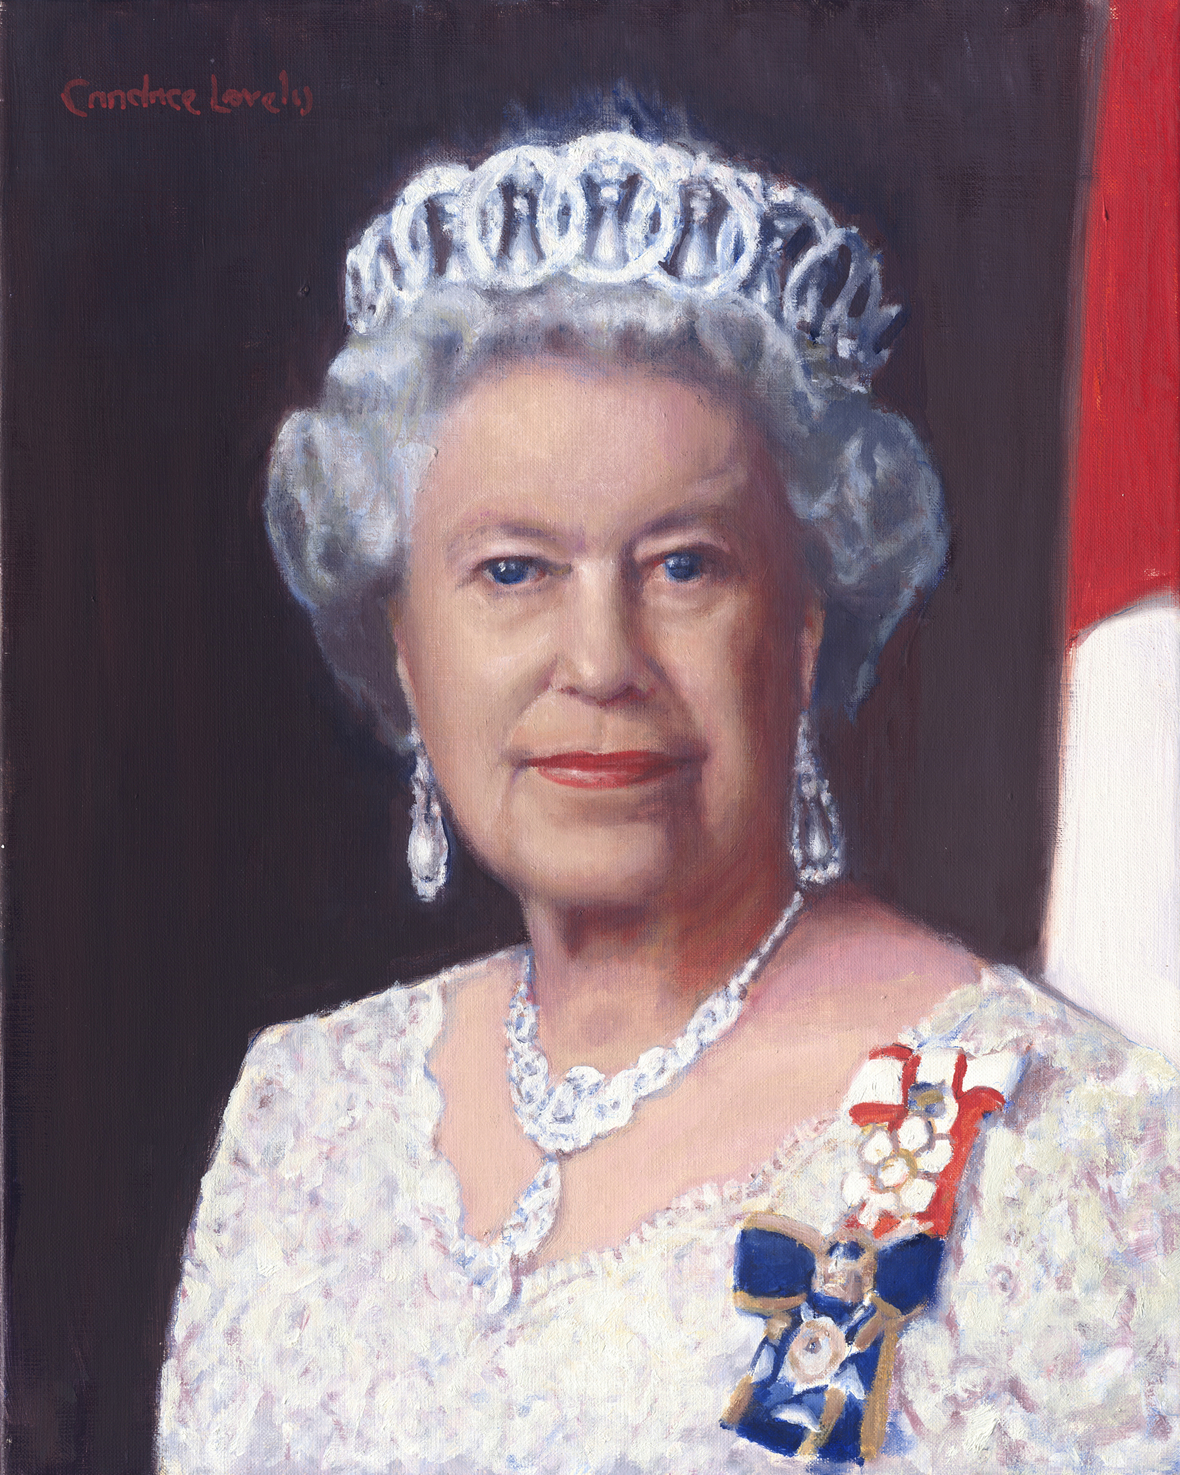 Queen for Canadian Citizens